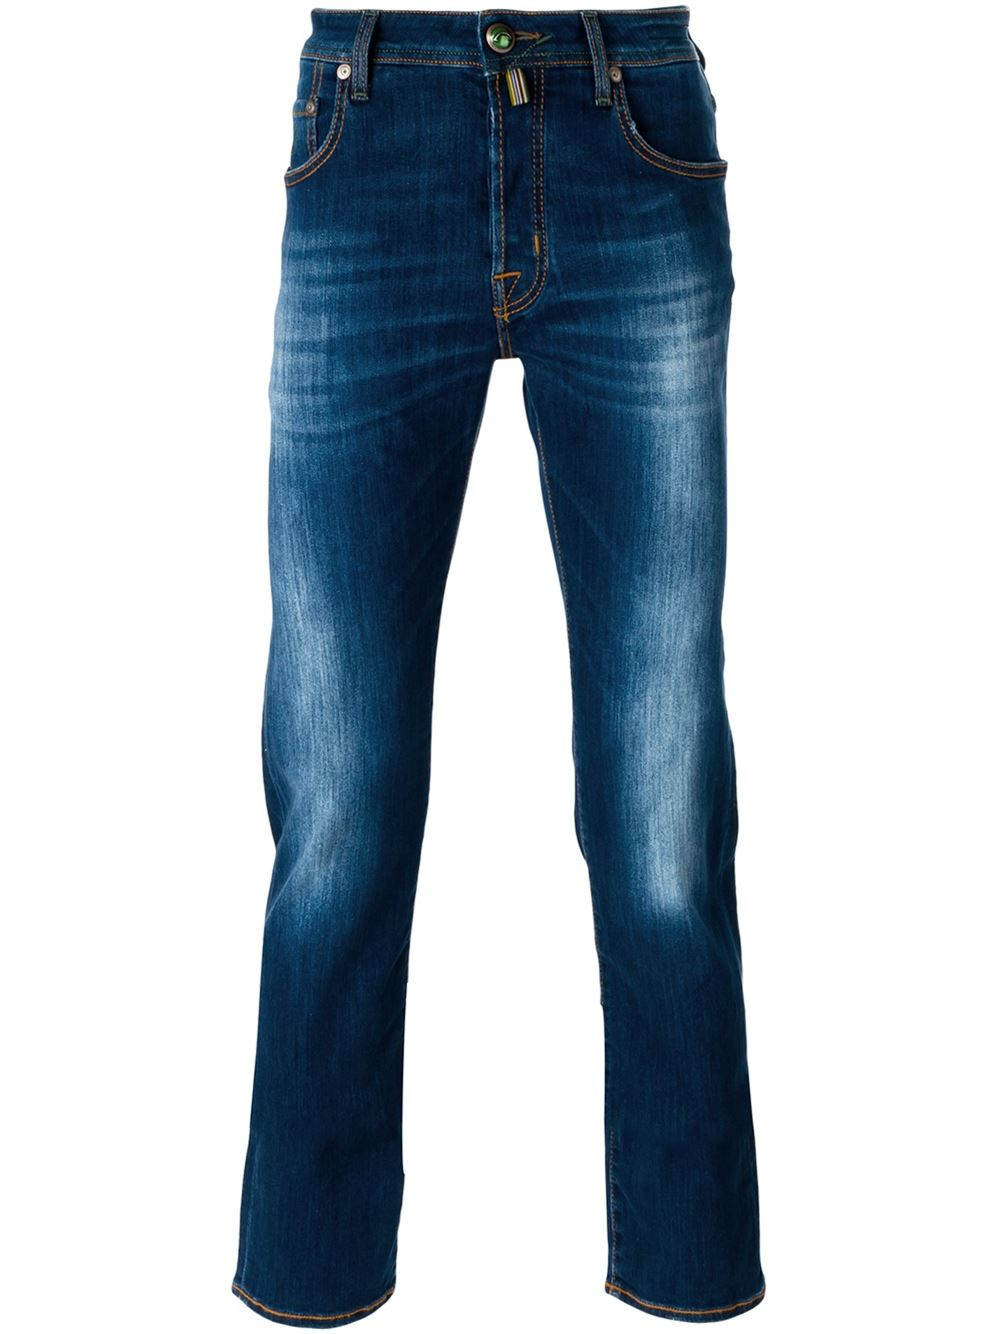 lyst jacob cohen stone washed jeans in blue for men. Black Bedroom Furniture Sets. Home Design Ideas